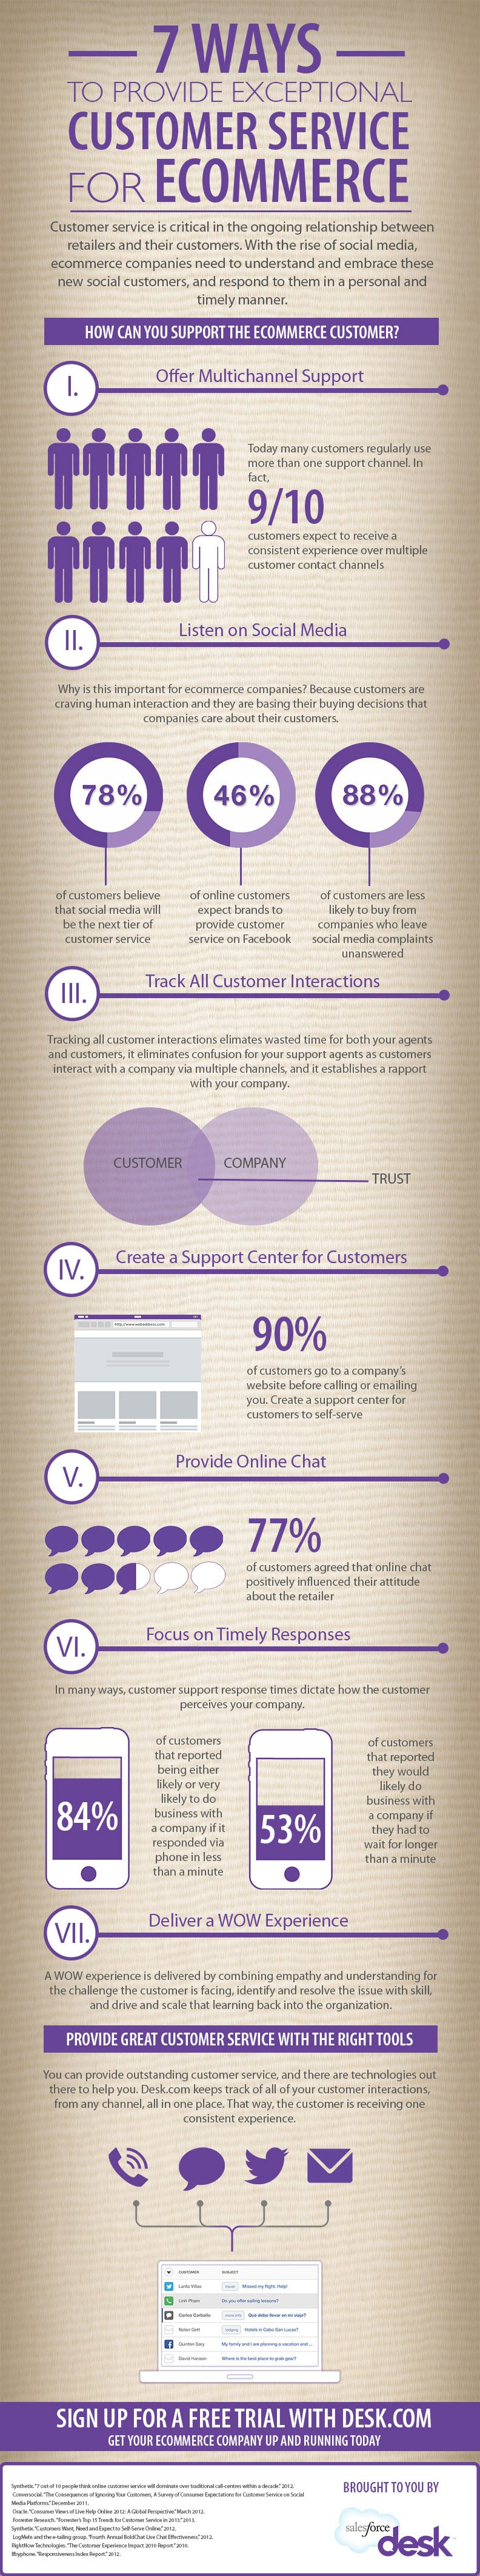 ecommerce-online-customer-service-infographic